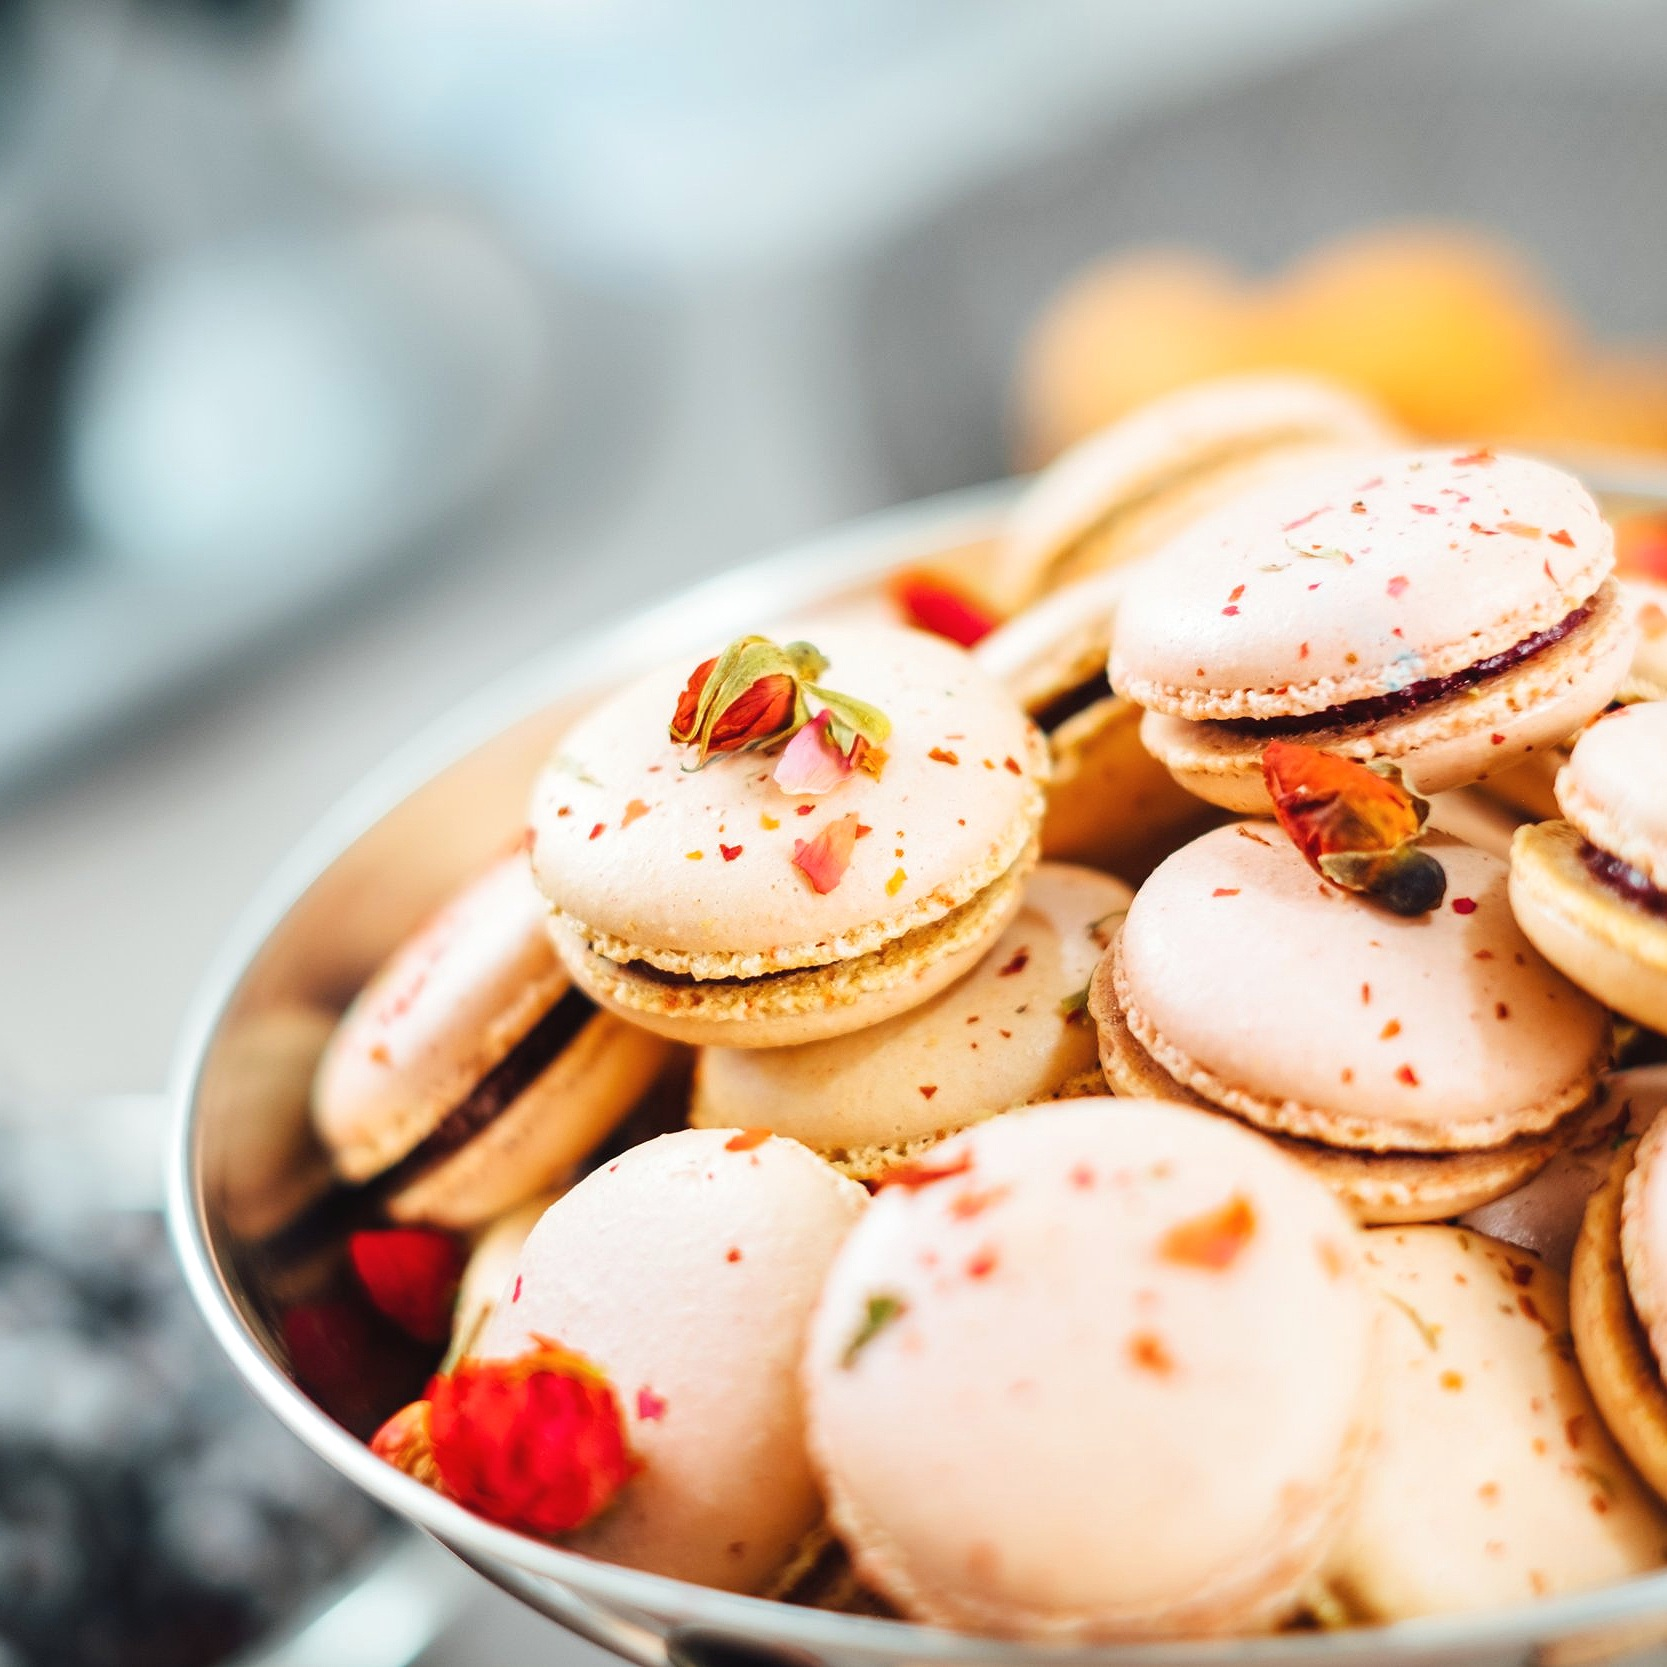 cookies-unsplash.jpg